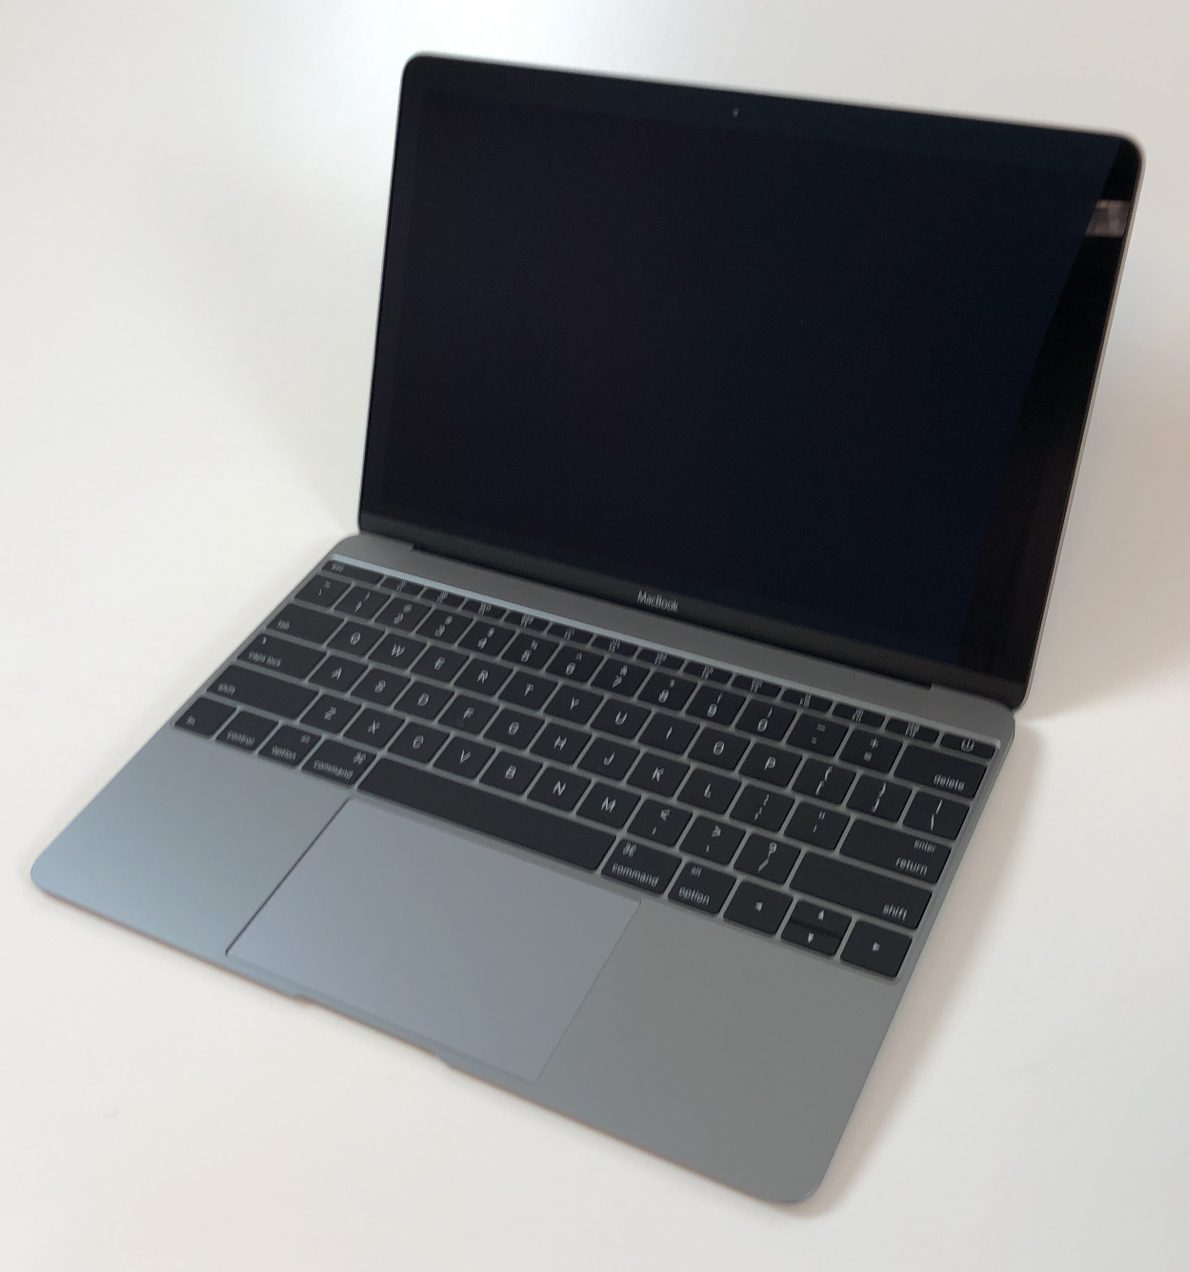 "MacBook 12"" Early 2016 (Intel Core m7 1.3 GHz 8 GB RAM 512 GB SSD), Space Gray, Intel Core m7 1.3 GHz, 8 GB RAM, 512 GB SSD, bild 1"